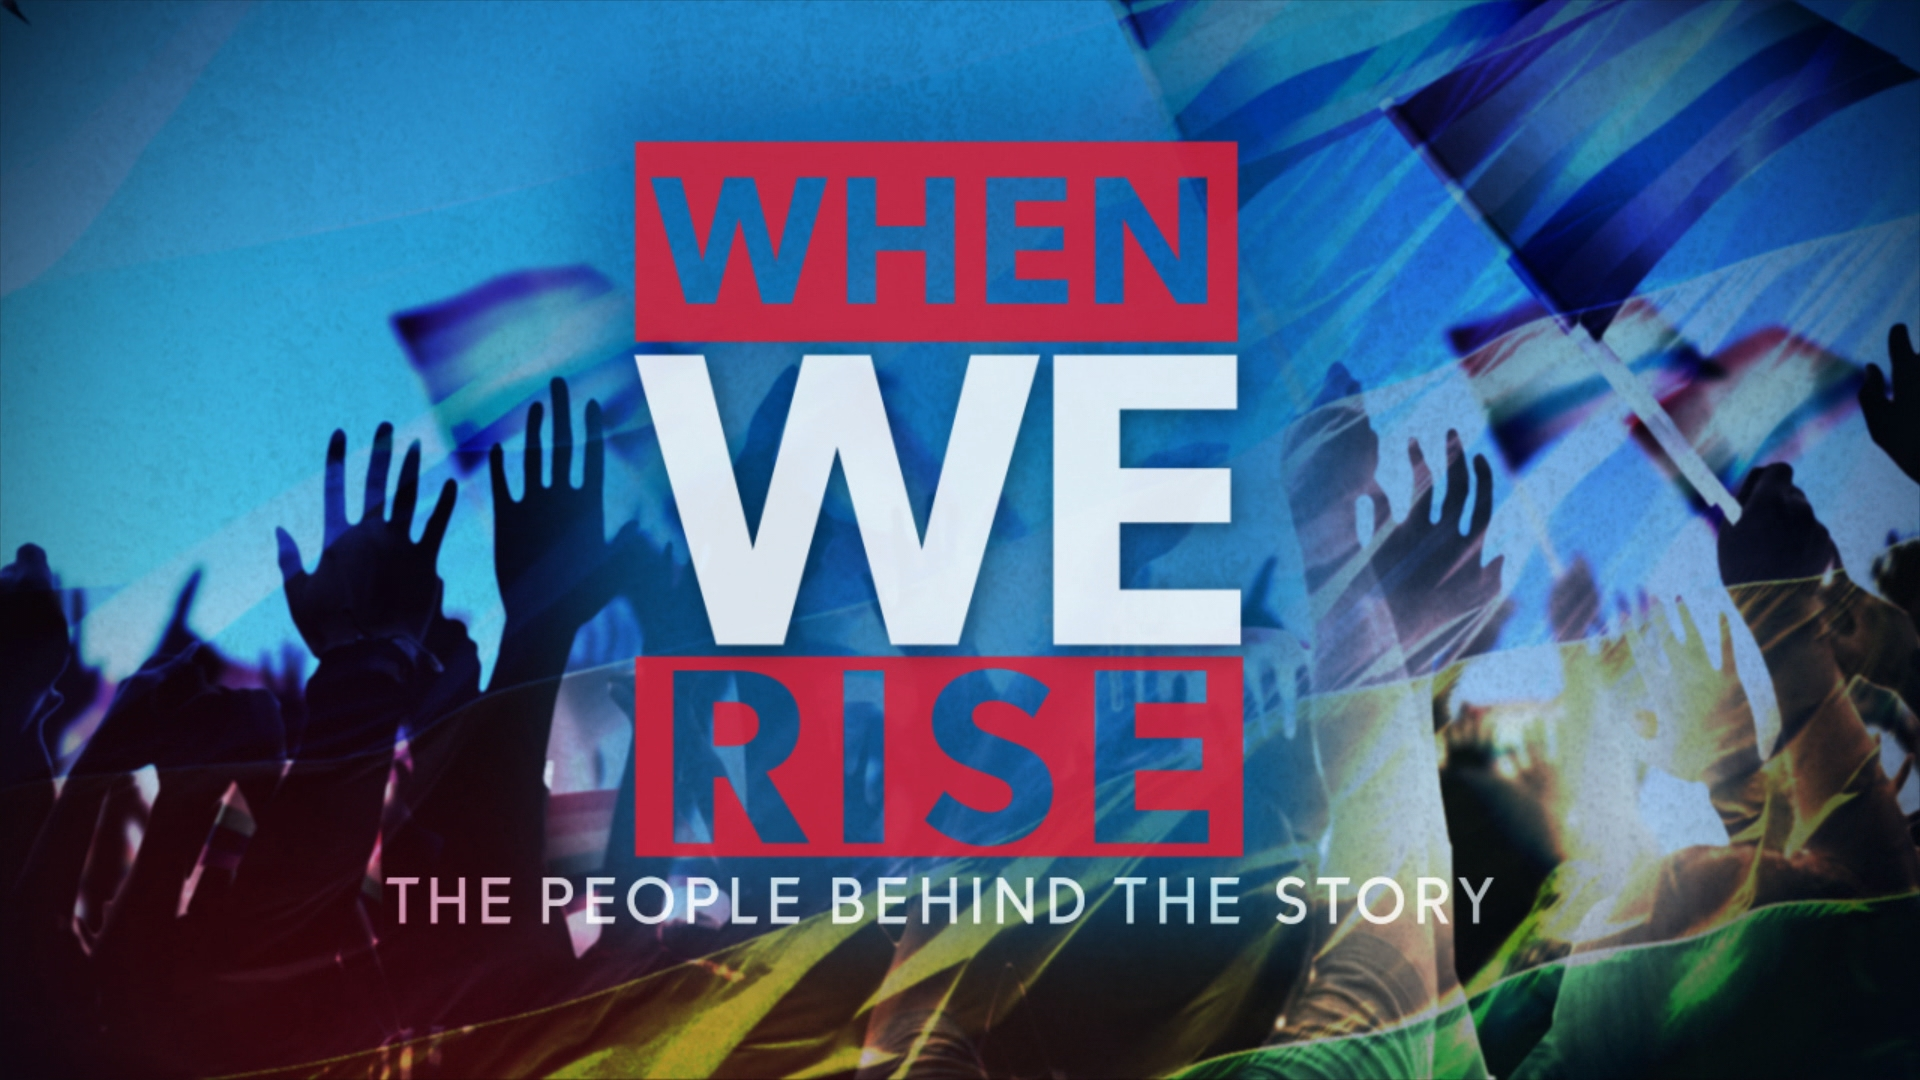 When We Rise: The People Behind the Story